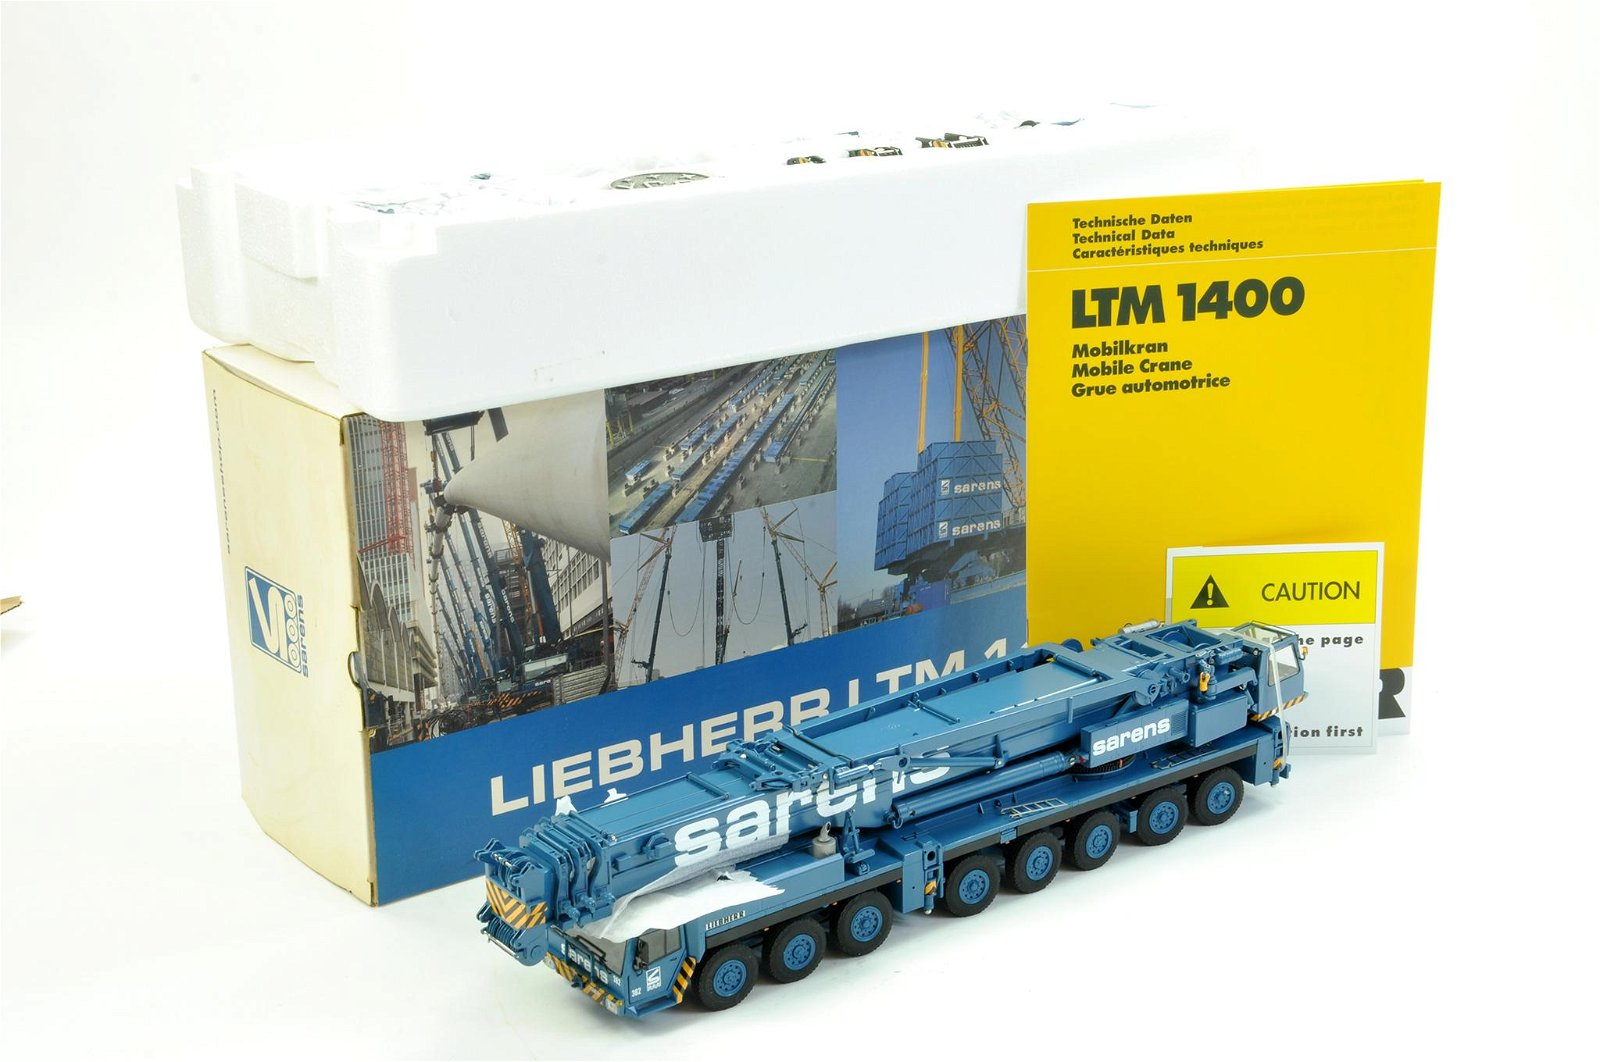 YCC Models 1/50 construction issue comprising Liebherr